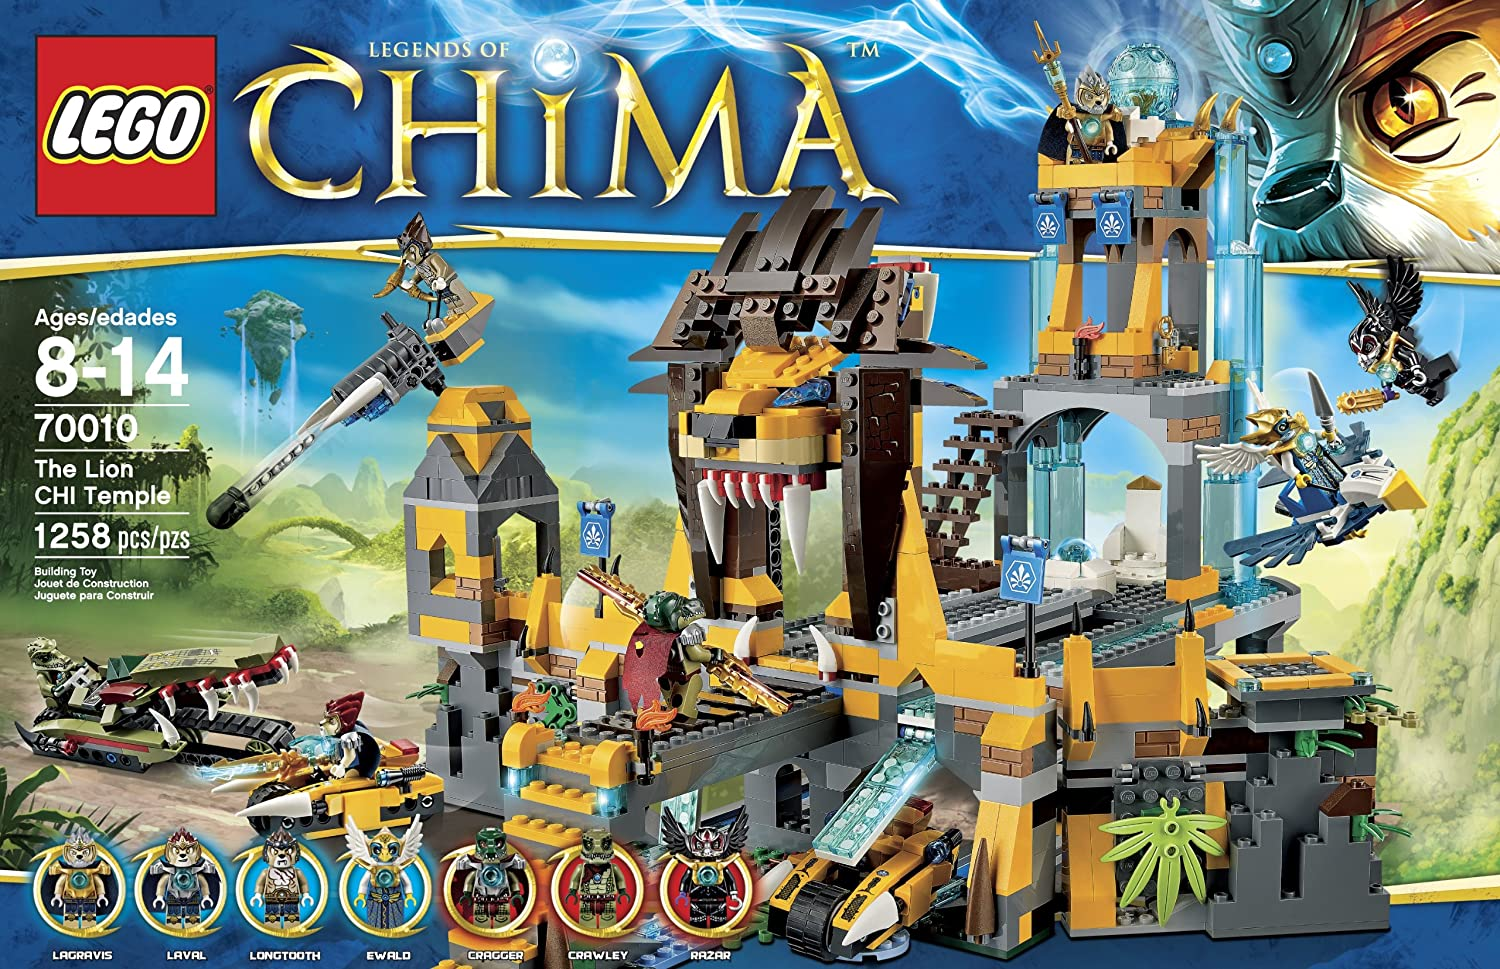 Amazon chima party supplies - Amazon Com Lego Chima 70010 The Lion Chi Temple Discontinued By Manufacturer Toys Games